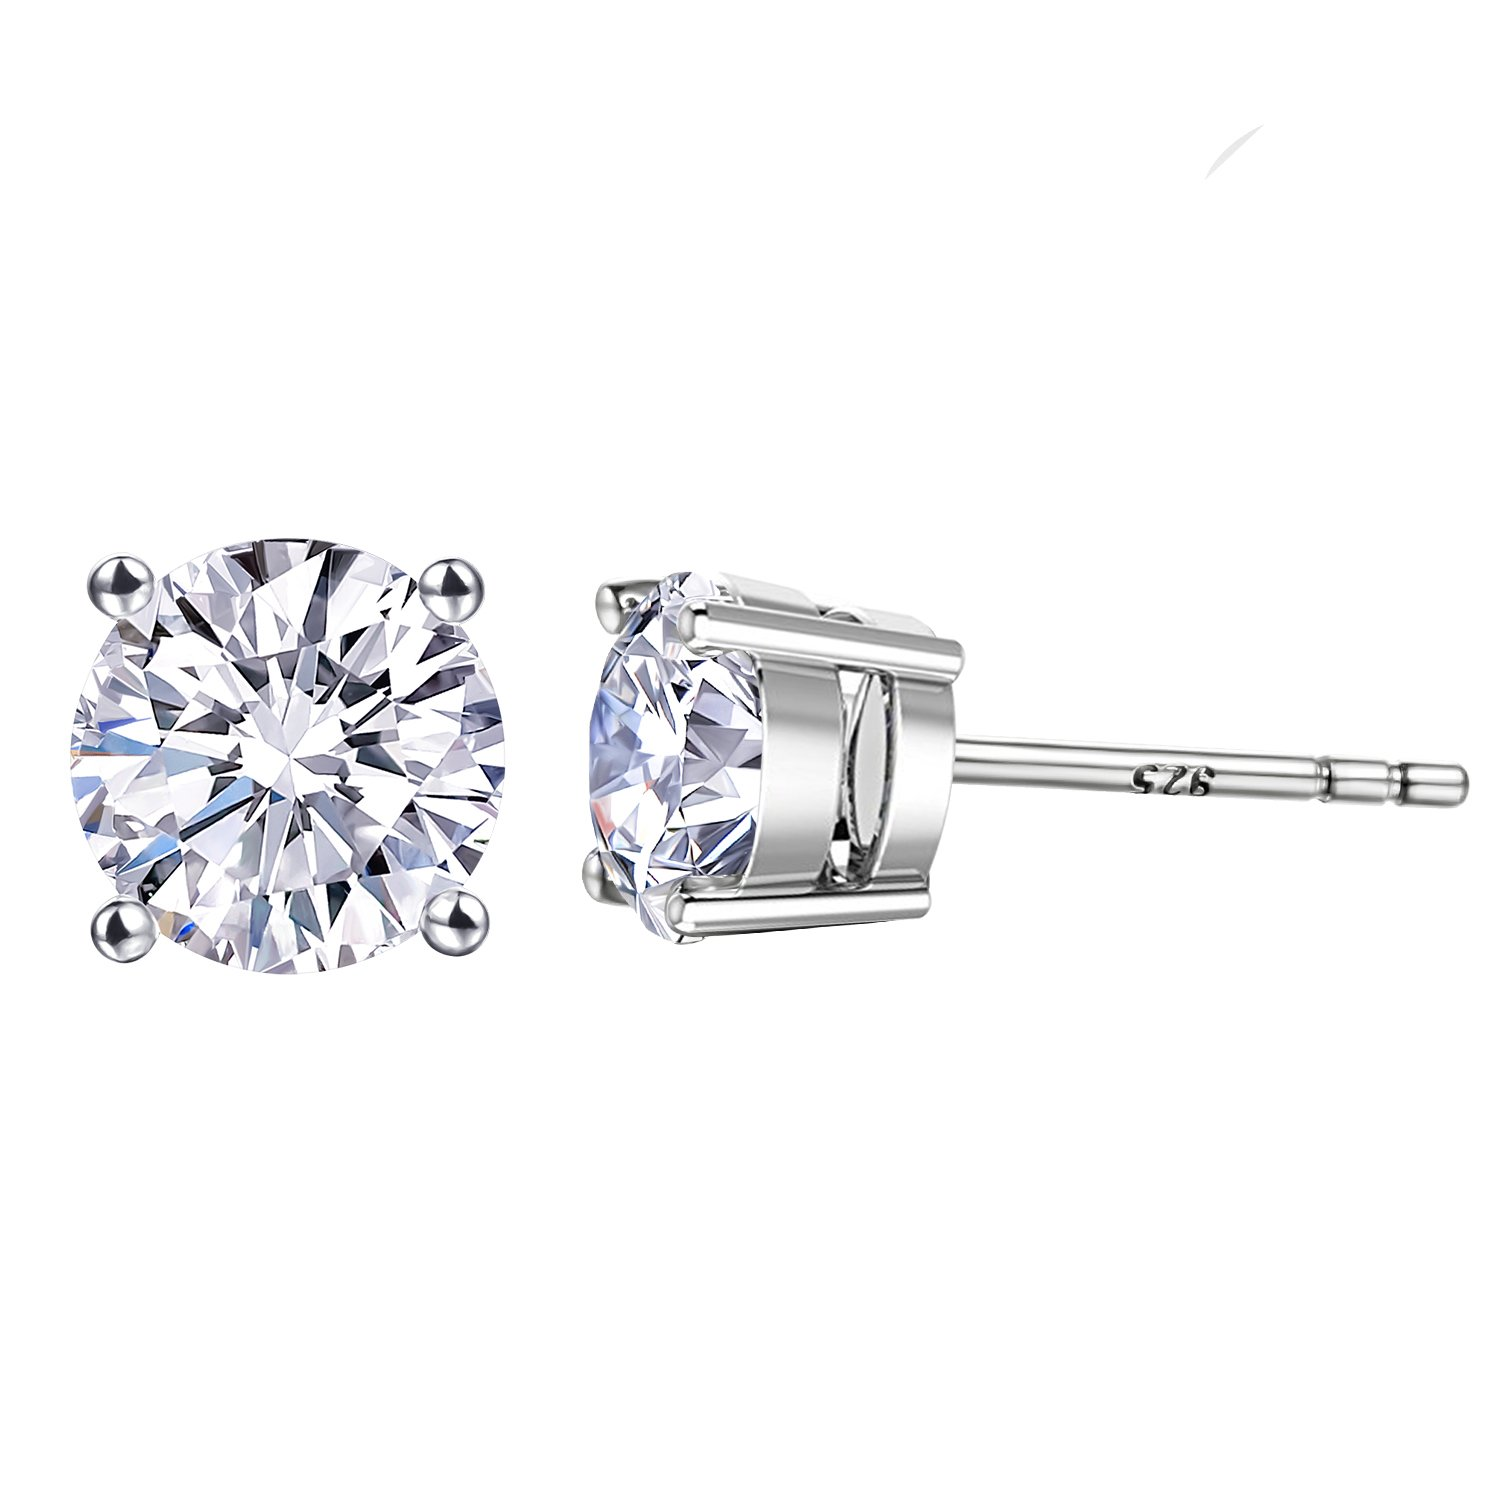 Buy Large Cz Fake Diamond Stud Earrings 18k Rose Gold Plated Cubic Zirconia Earrings 925 Sterling Silver Round Cz Studs Hypoallergenic Earrings For Men Women White Gold 6 5mm Round Cubic